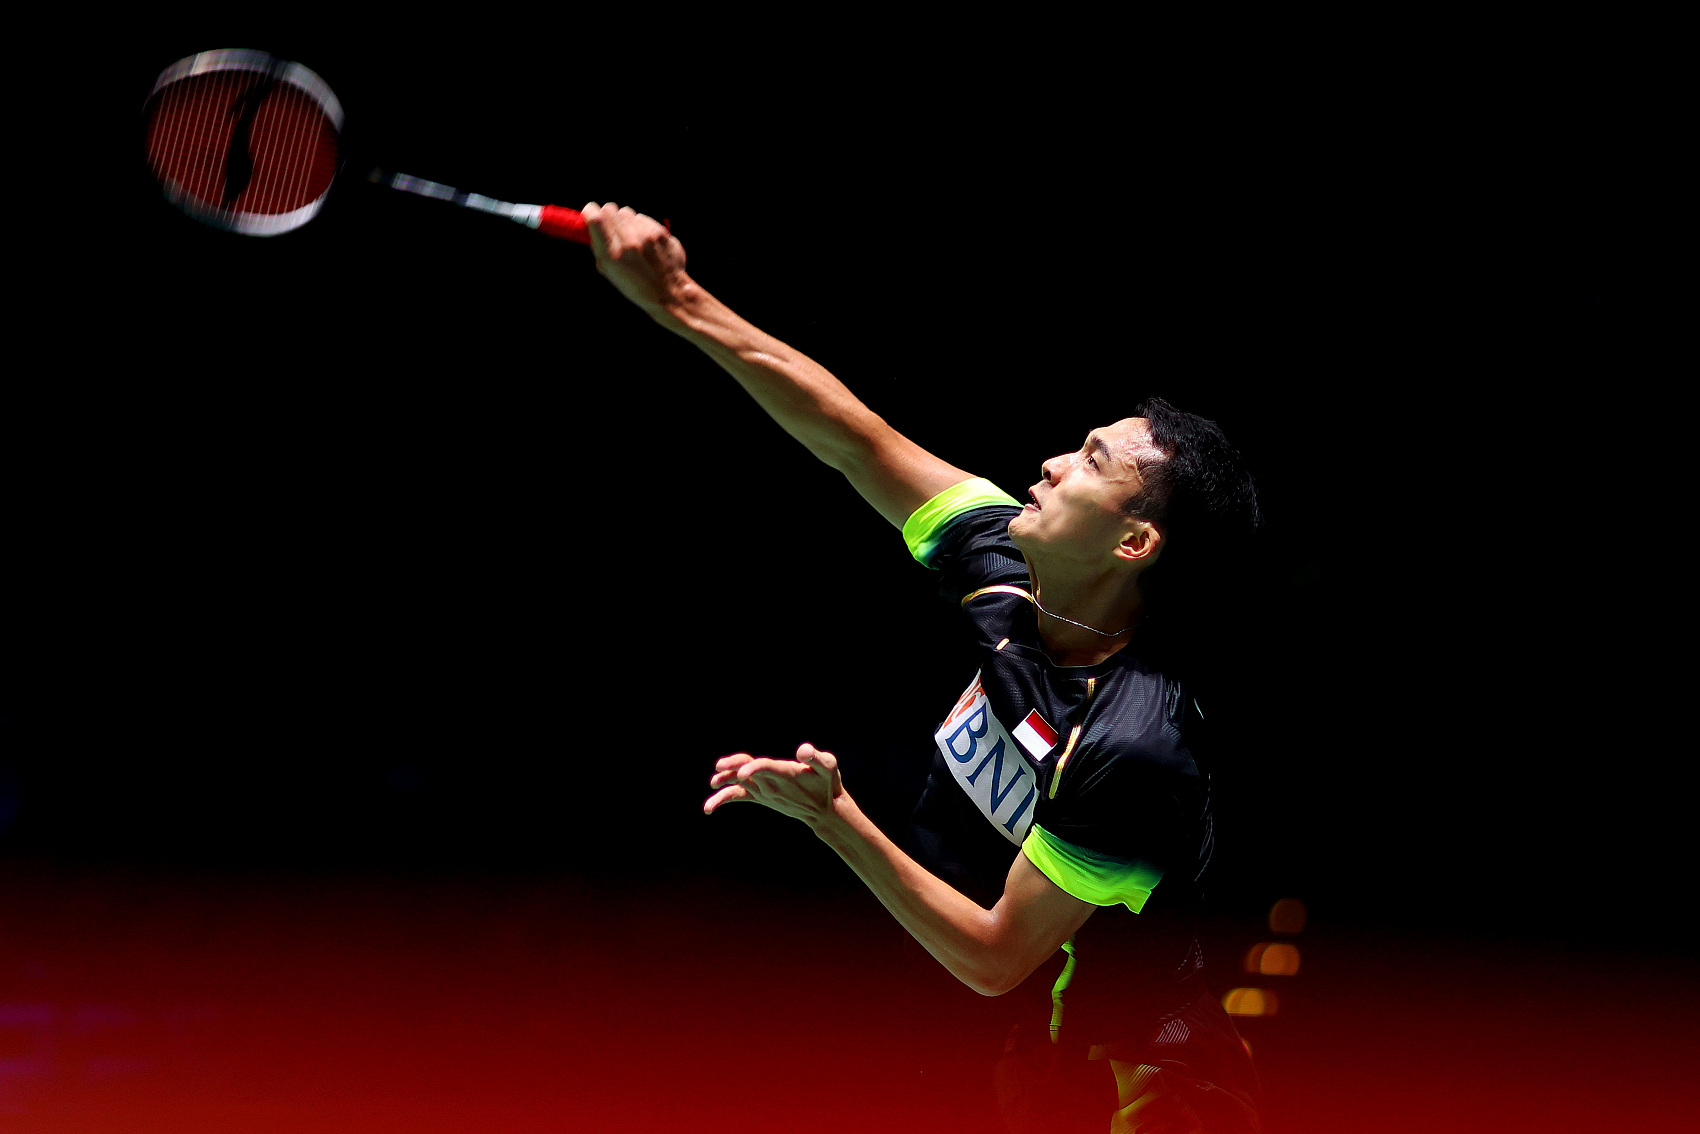 Indonesia badminton team out of All England after virus case on flight